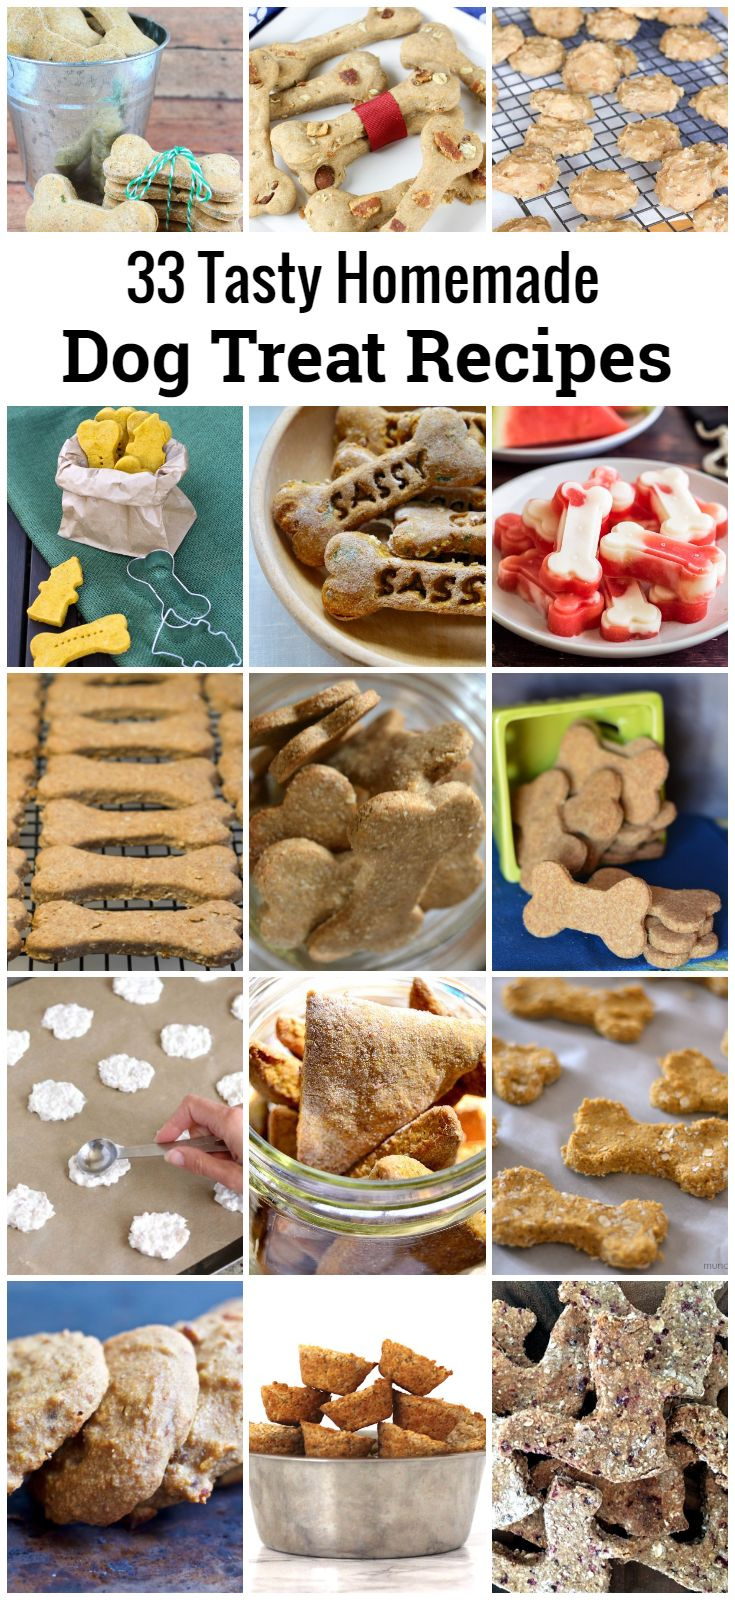 33 Tasty Homemade Dog Treat Recipes - frozen yogurt dog treats, chicken flavored biscuits, oat biscuits, gluten/wheat free treats, and more!